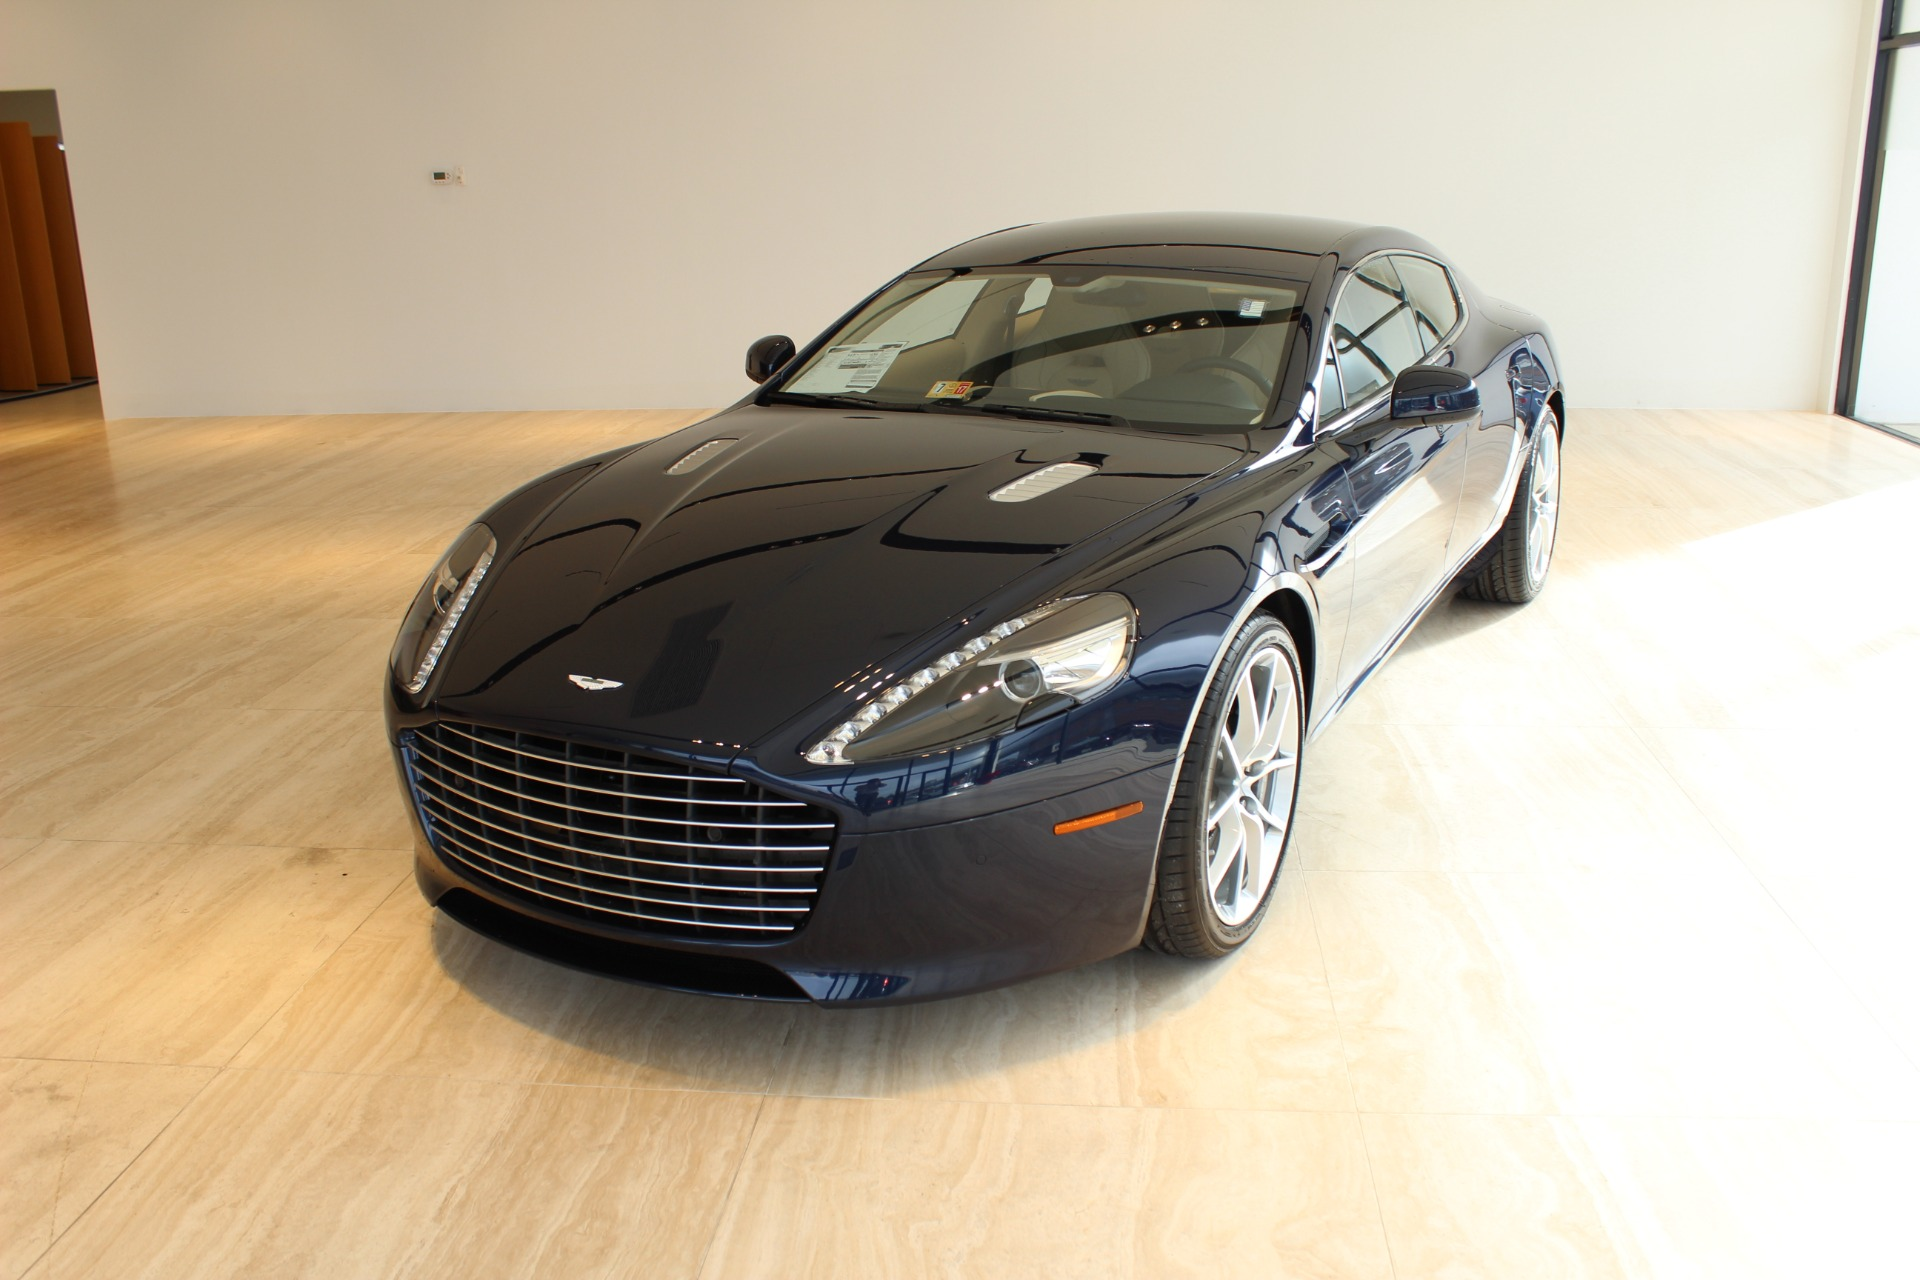 2016 Aston Martin Rapide S Stock 6nf05498 For Sale Near Vienna Va Va Aston Martin Dealer For Sale In Vienna Va 6nf05498 Exclusive Automotive Group